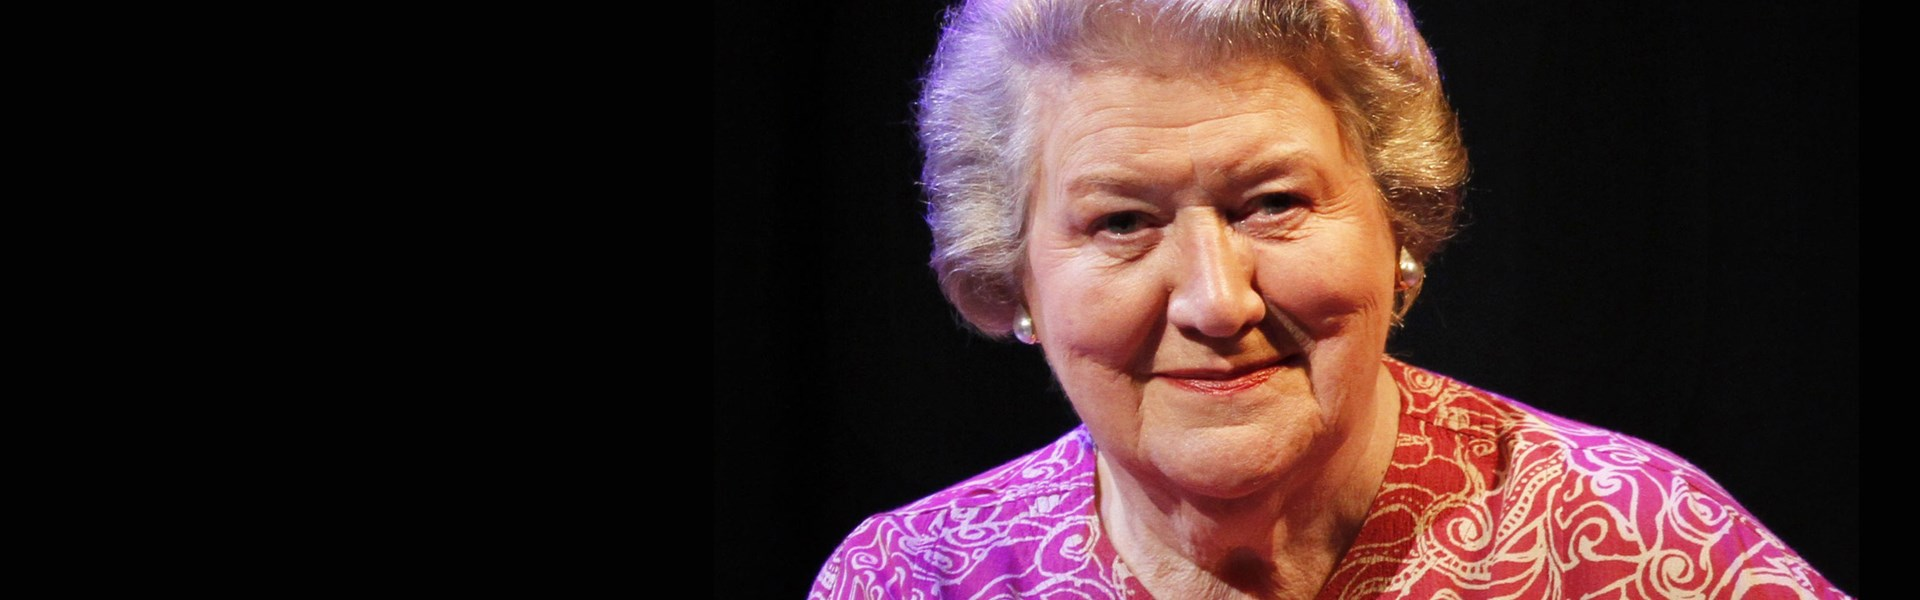 Patricia Routledge: Facing The Music